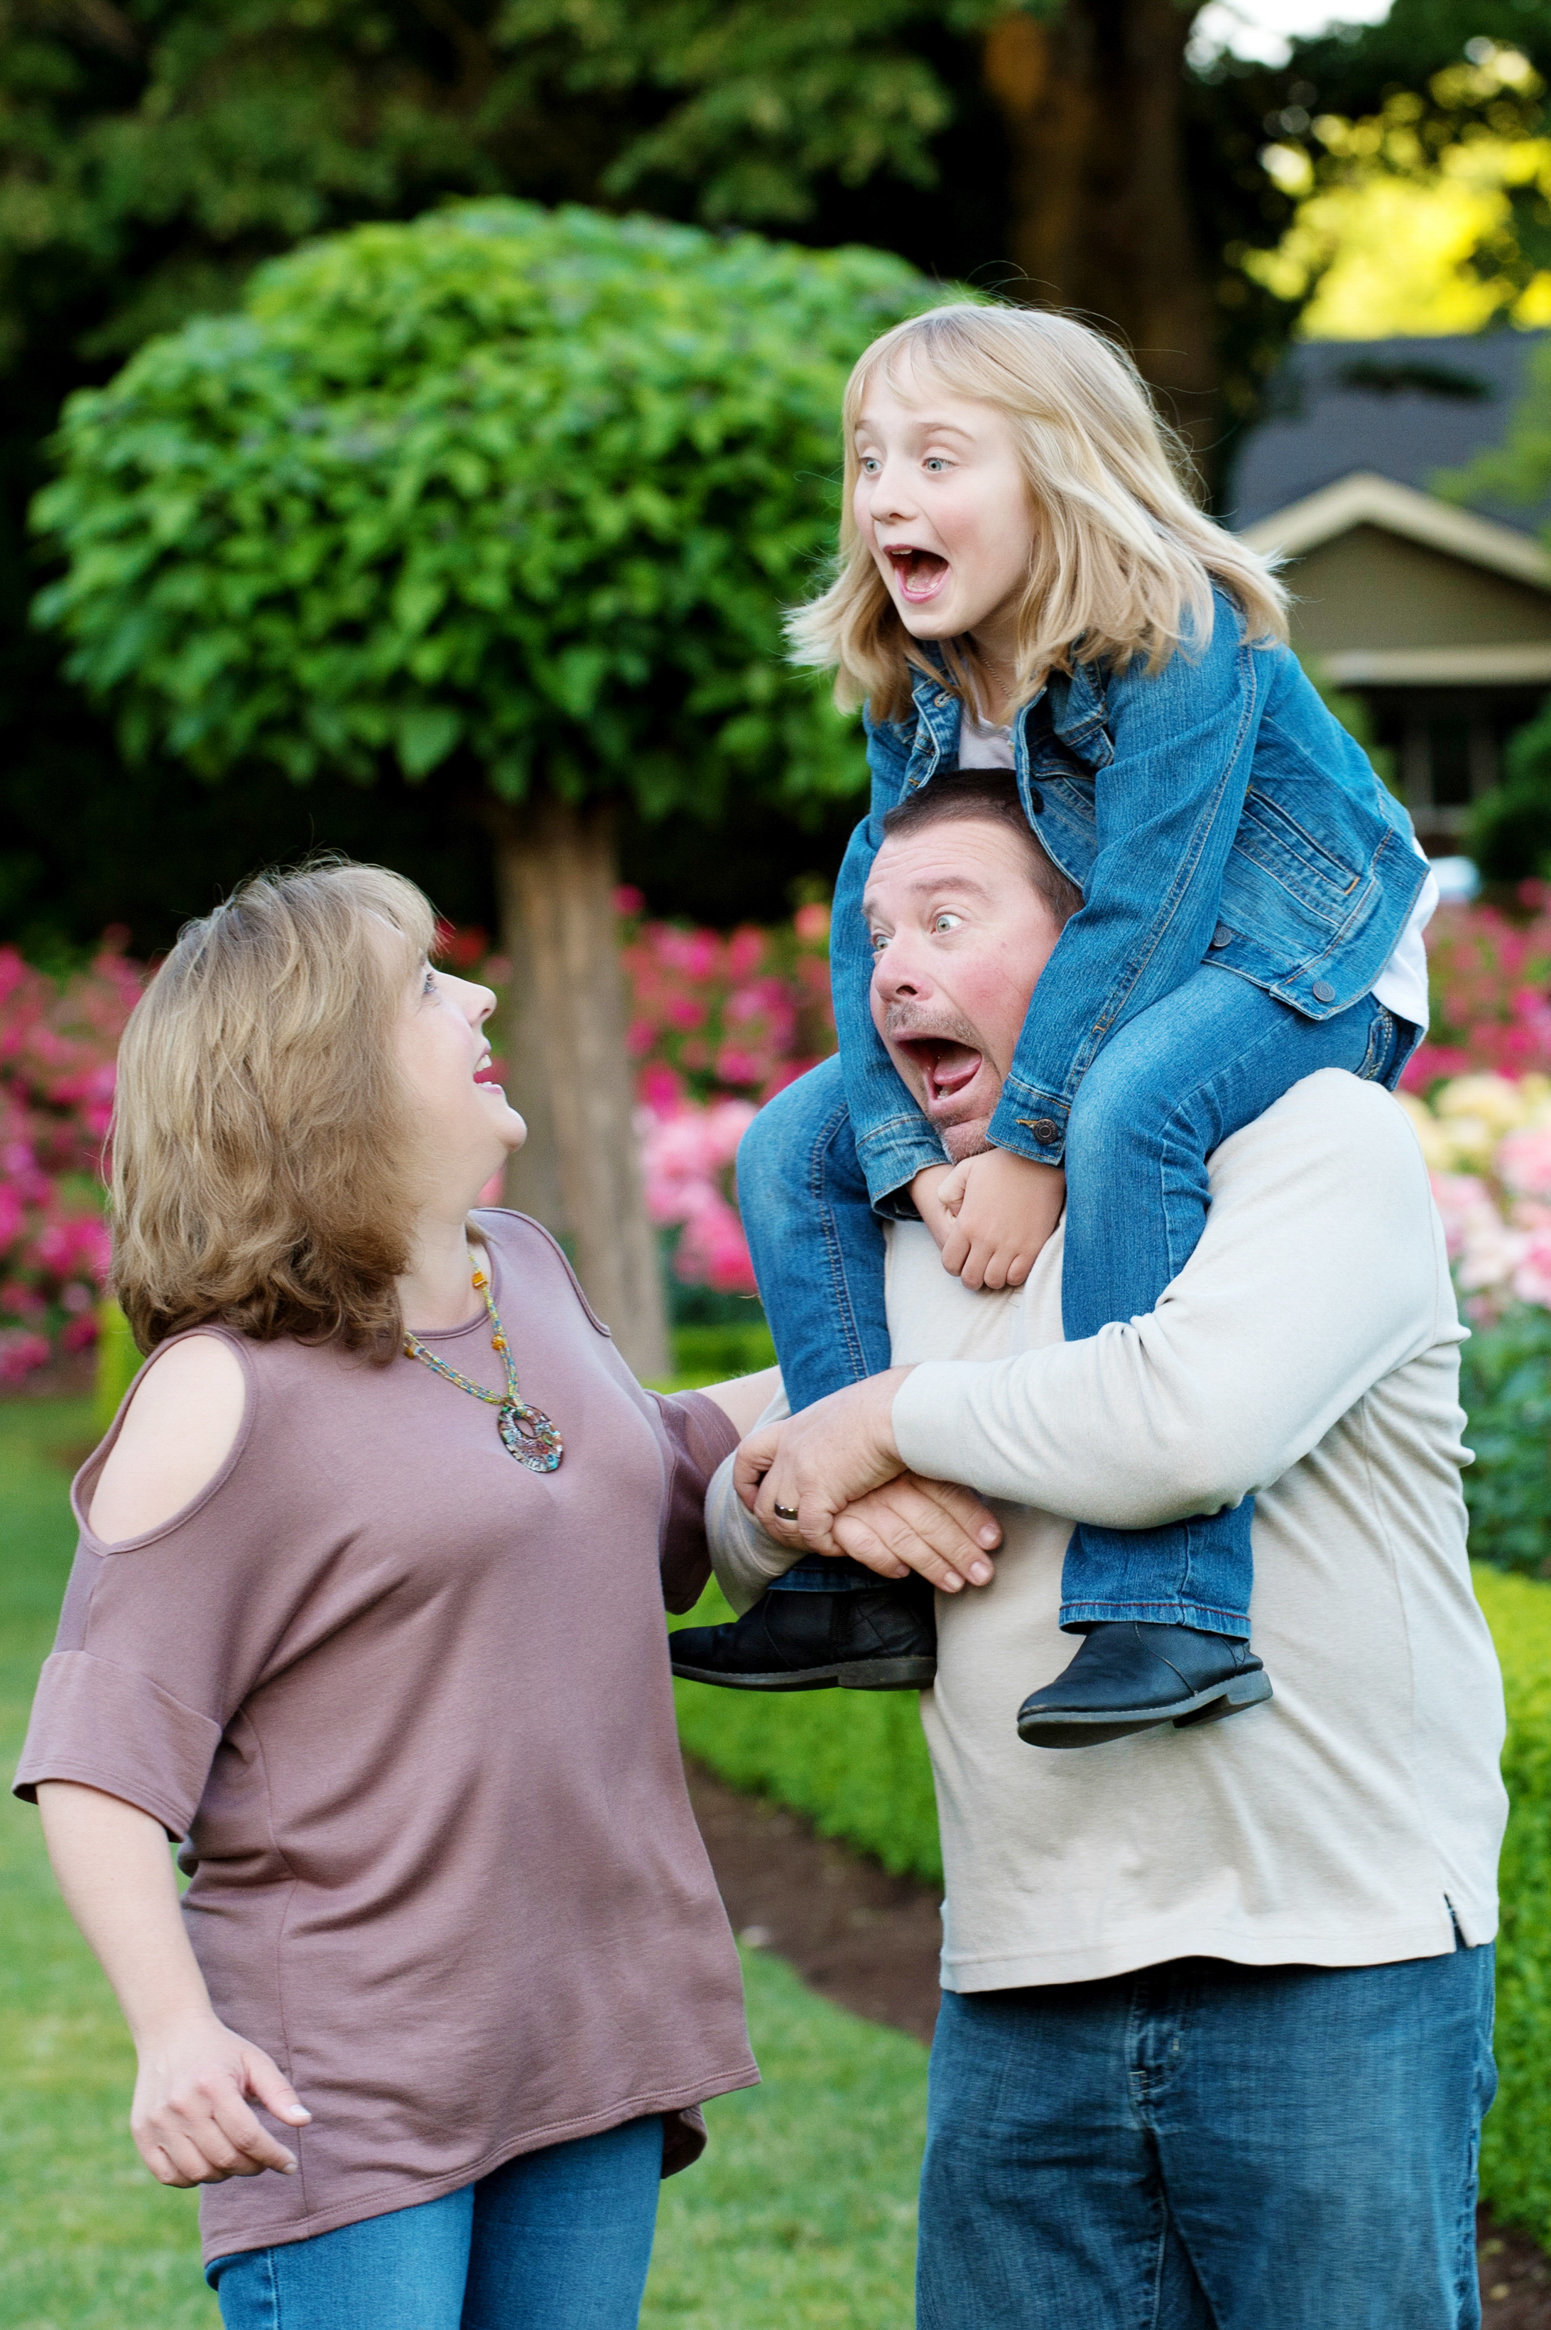 a dad holds his daughter on his shoulders and they both make funny faces at mom